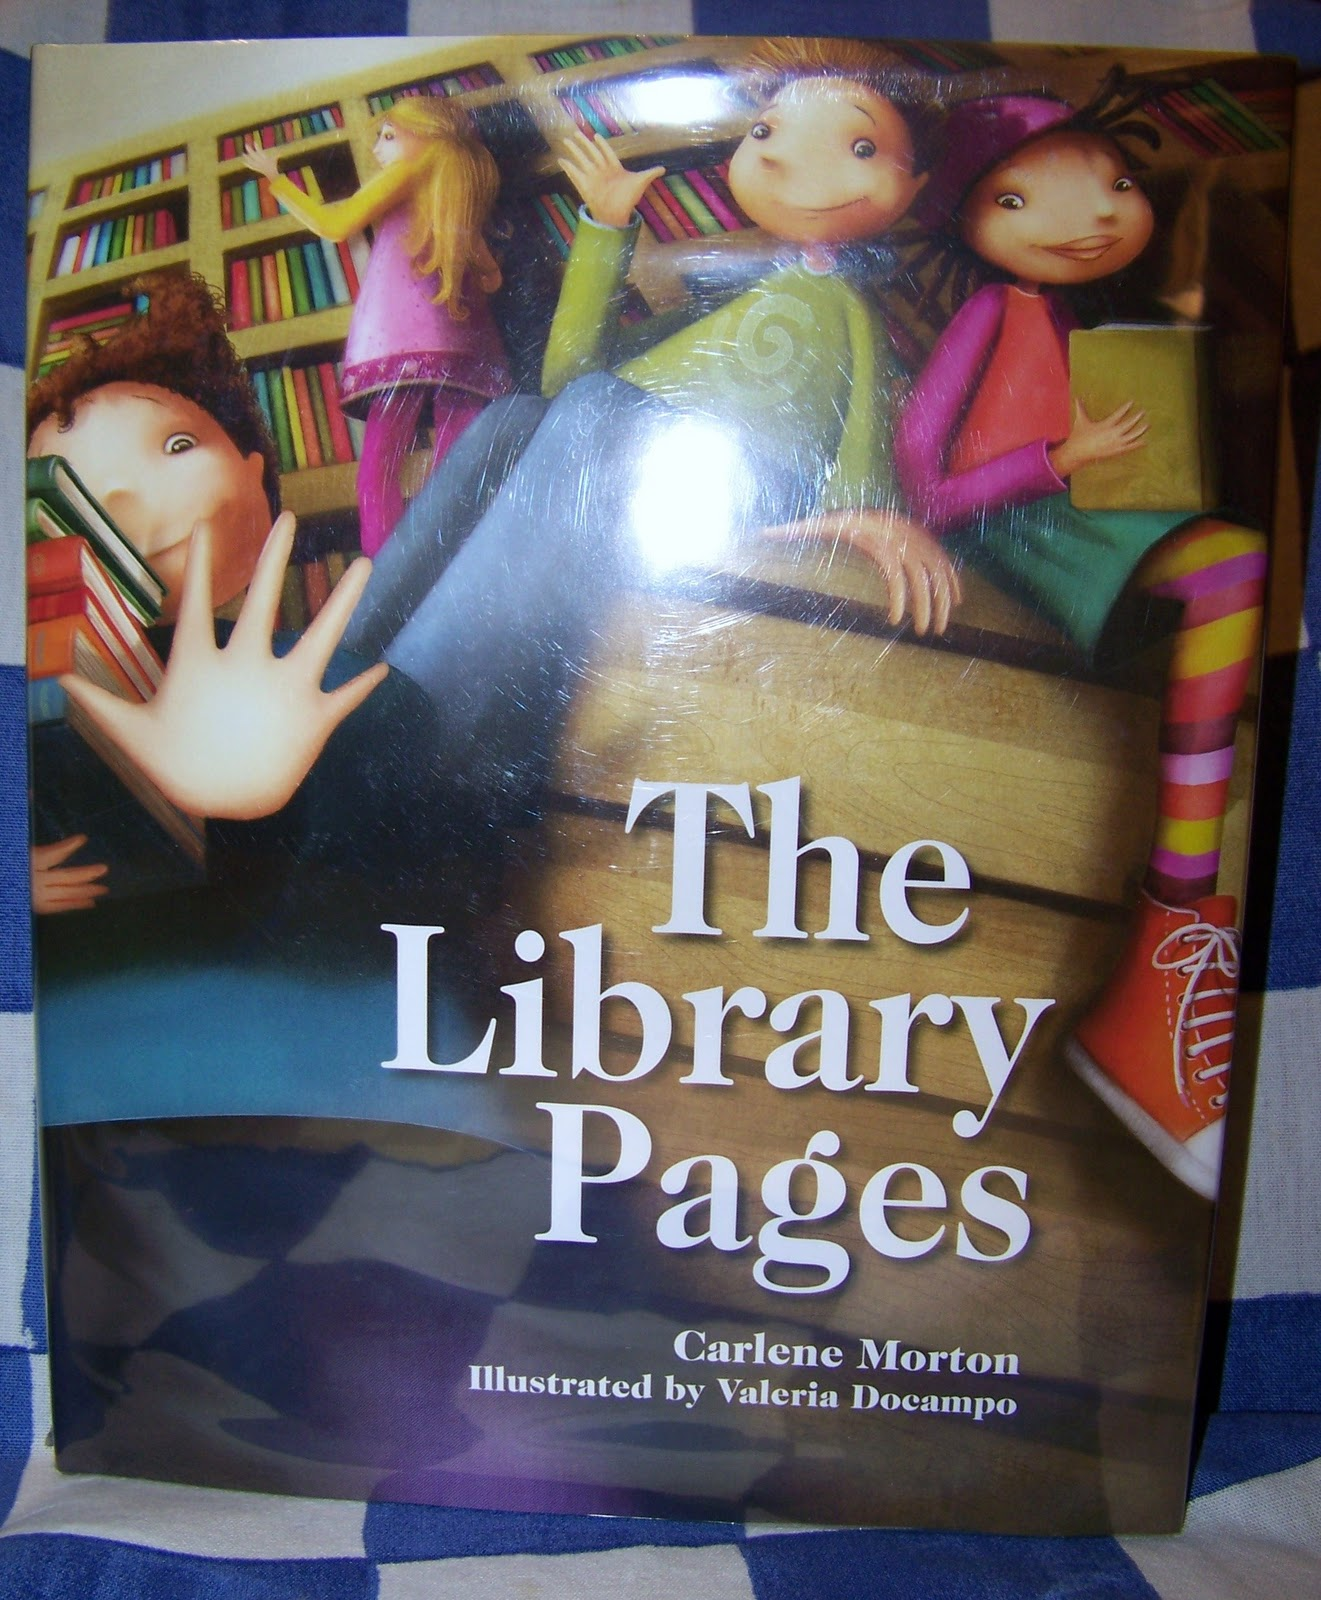 The Library Pages Carlene Morton and Valeria Docampo